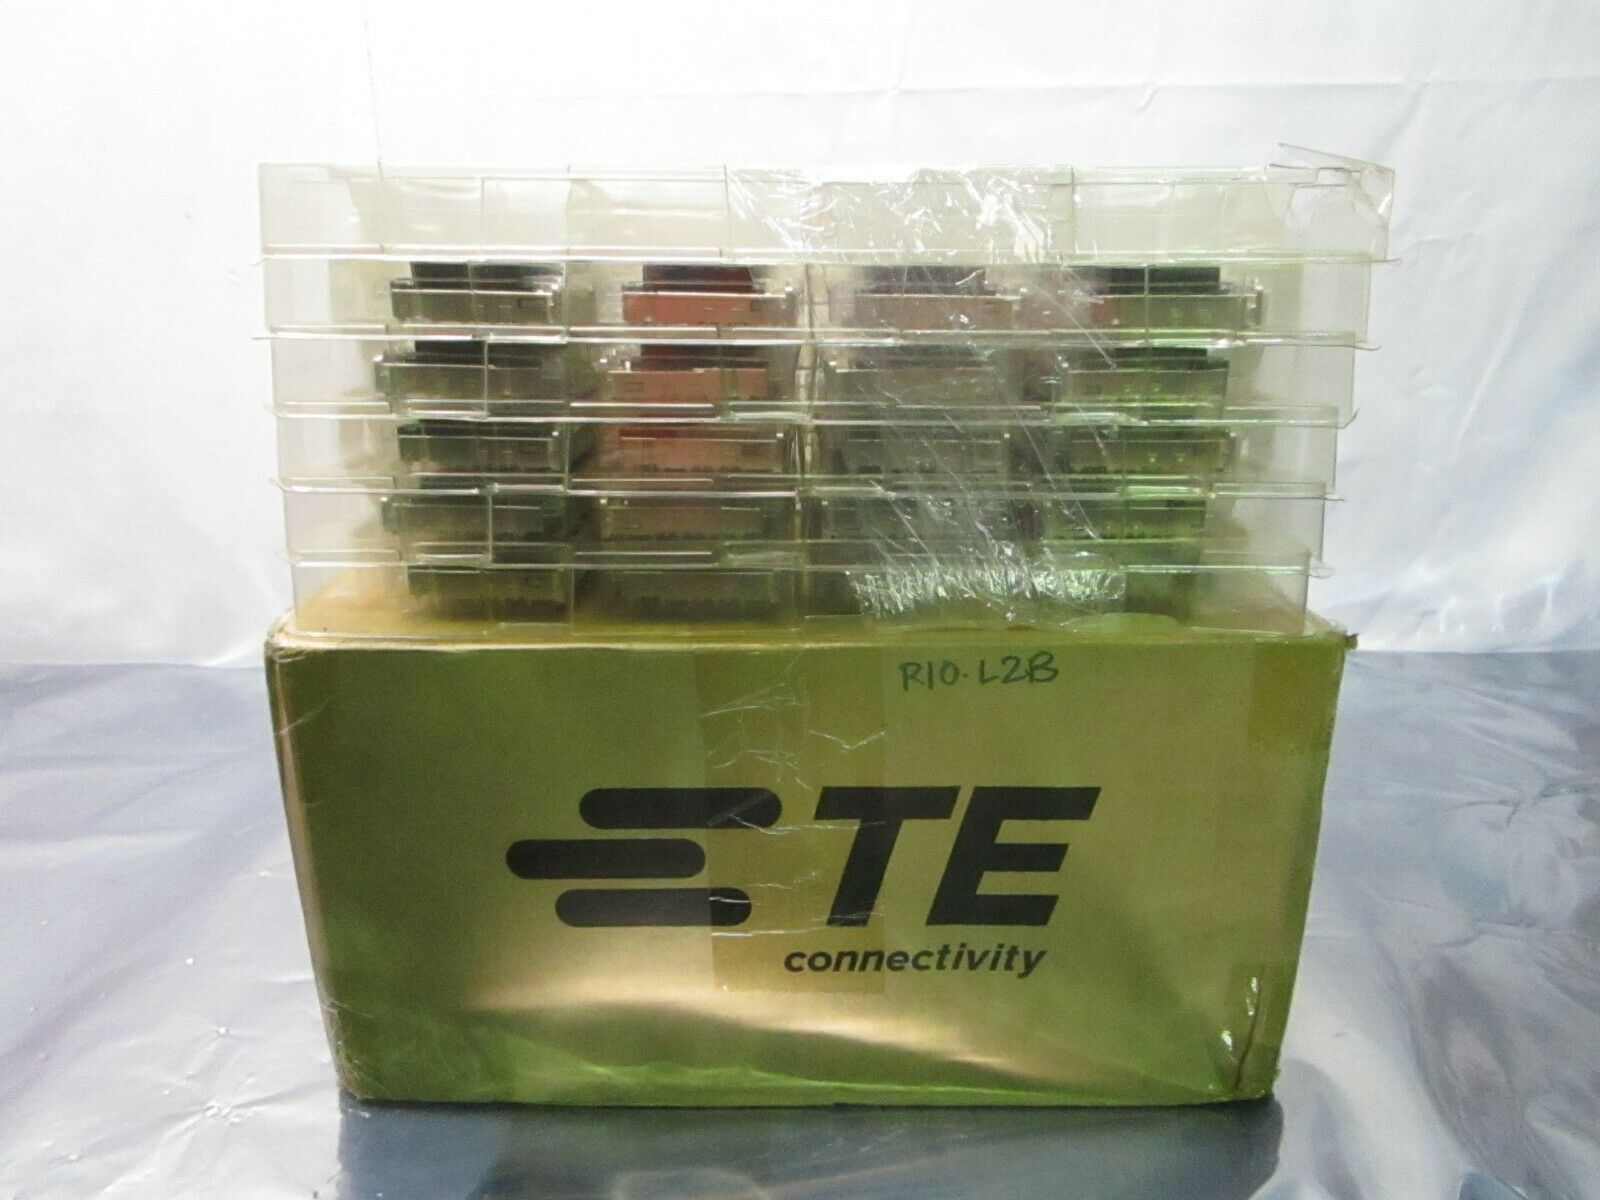 1 Lot of 40 TE connectivity AMP Brand 2170551-1 1X6 CAGE ASSEMBLY, 102446